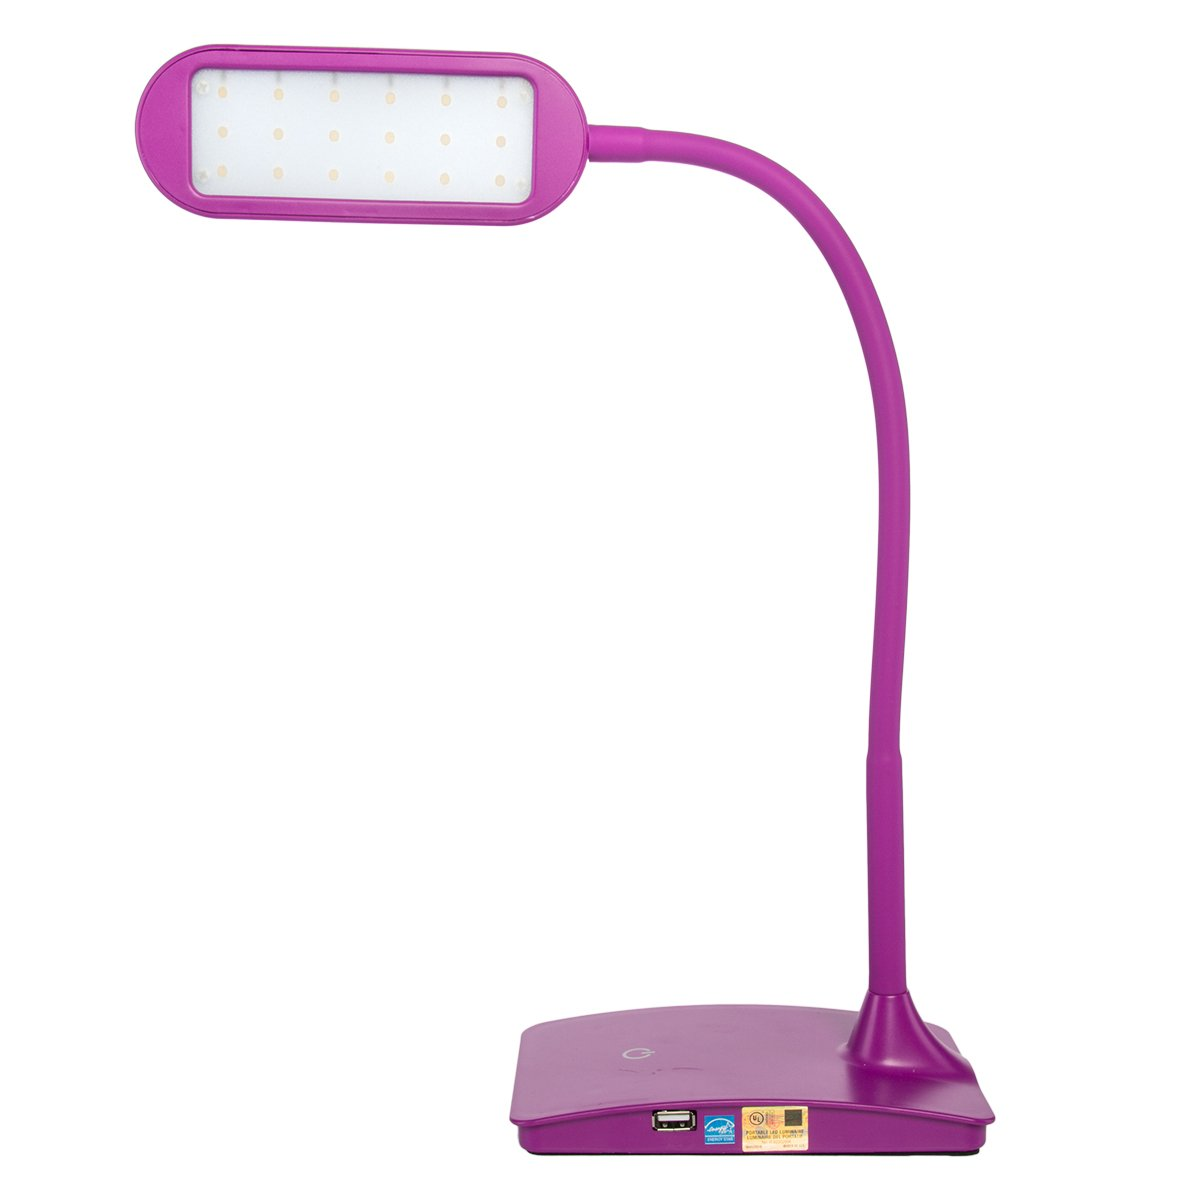 Tw Lighting Ivy 40bk The Ivy Led Desk Lamp With Usb Port